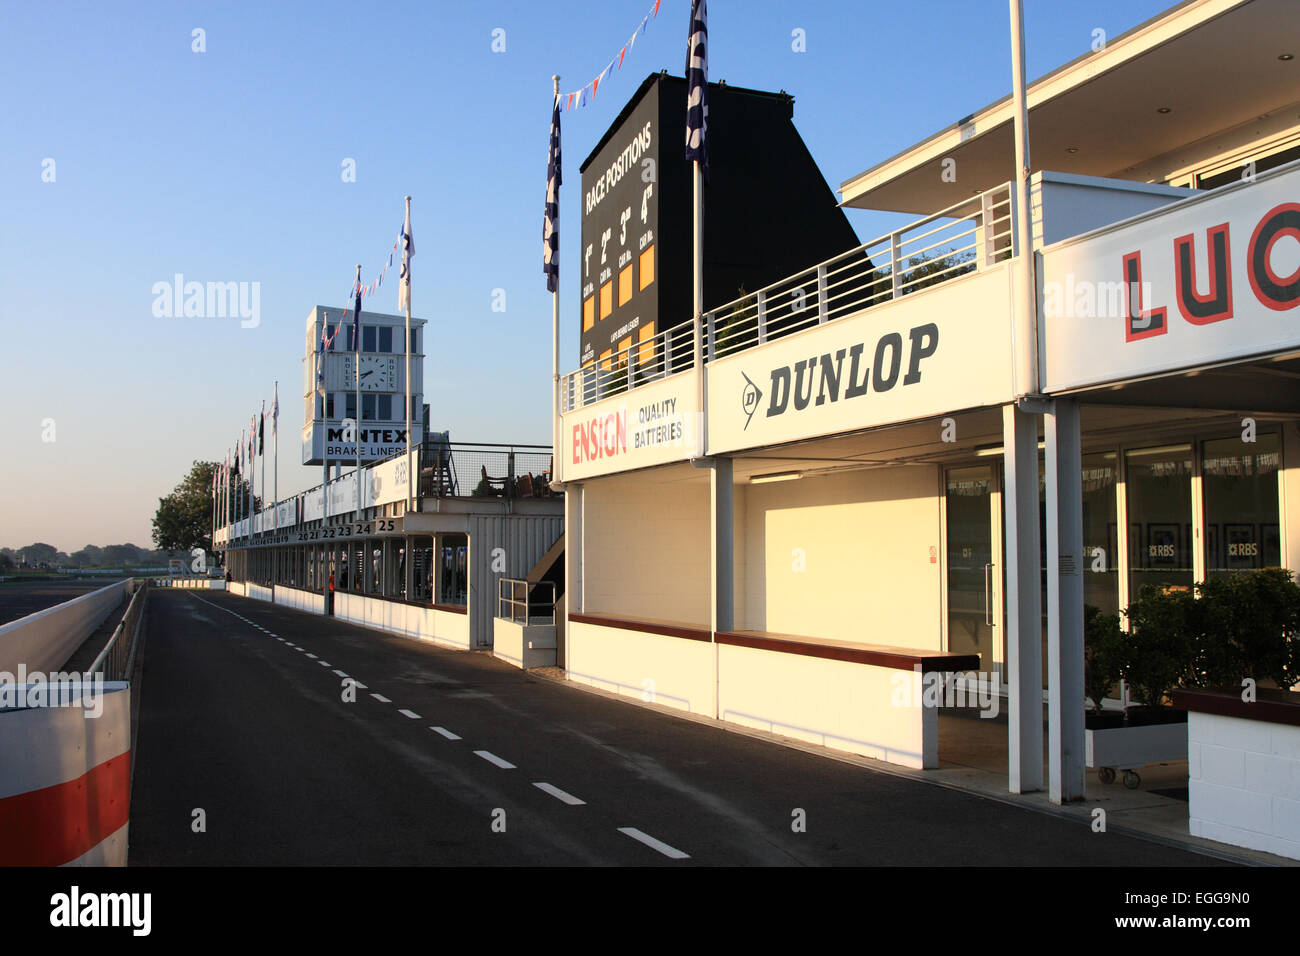 Crack of dawn on the big day and an empty pit lane / Goodwood Revival / Goodwood / UK - Stock Image